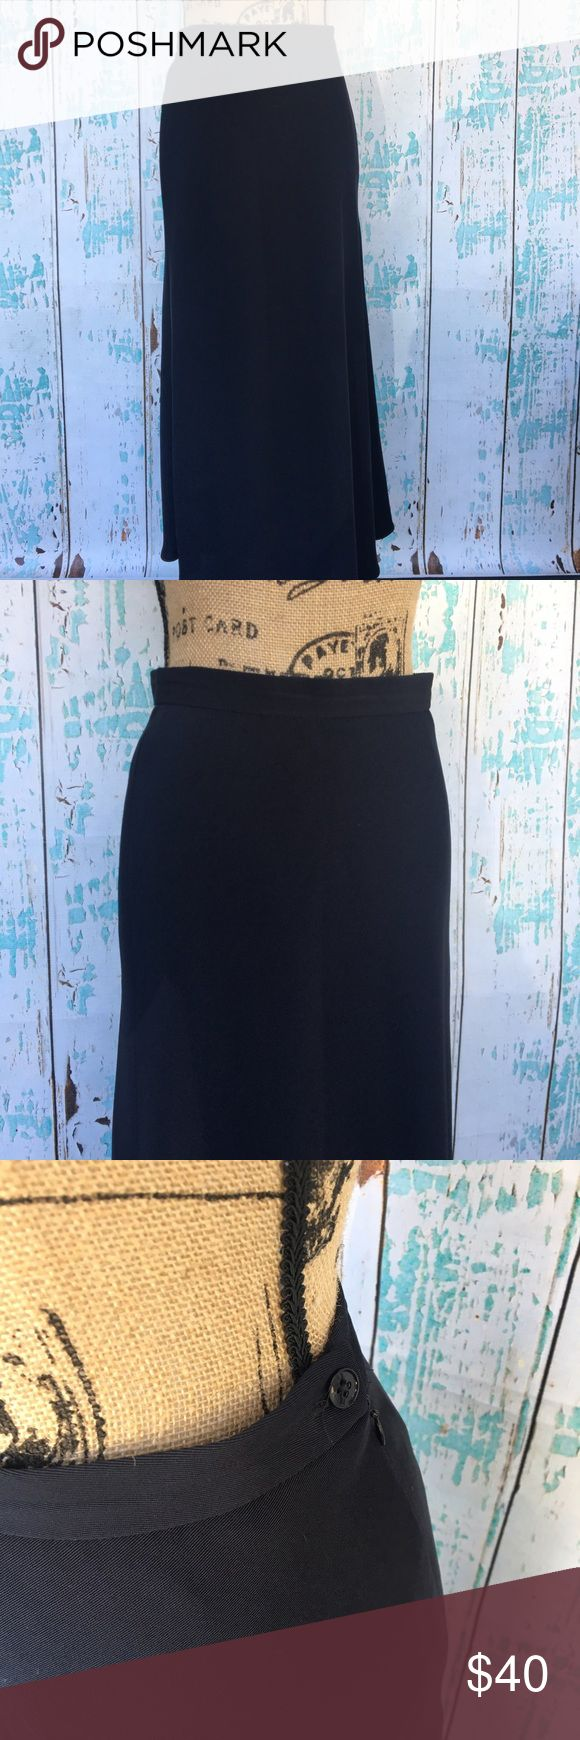 Lauren Ralph Lauren navy blue maxi/midi skirt Lauren Ralph Lauren navy blue maxi/midi A line skirt size 6. This can be paired with a nice work shirt or even a crop too and cute wedges for a trendy look. Lauren Ralph Lauren Skirts A-Line or Full